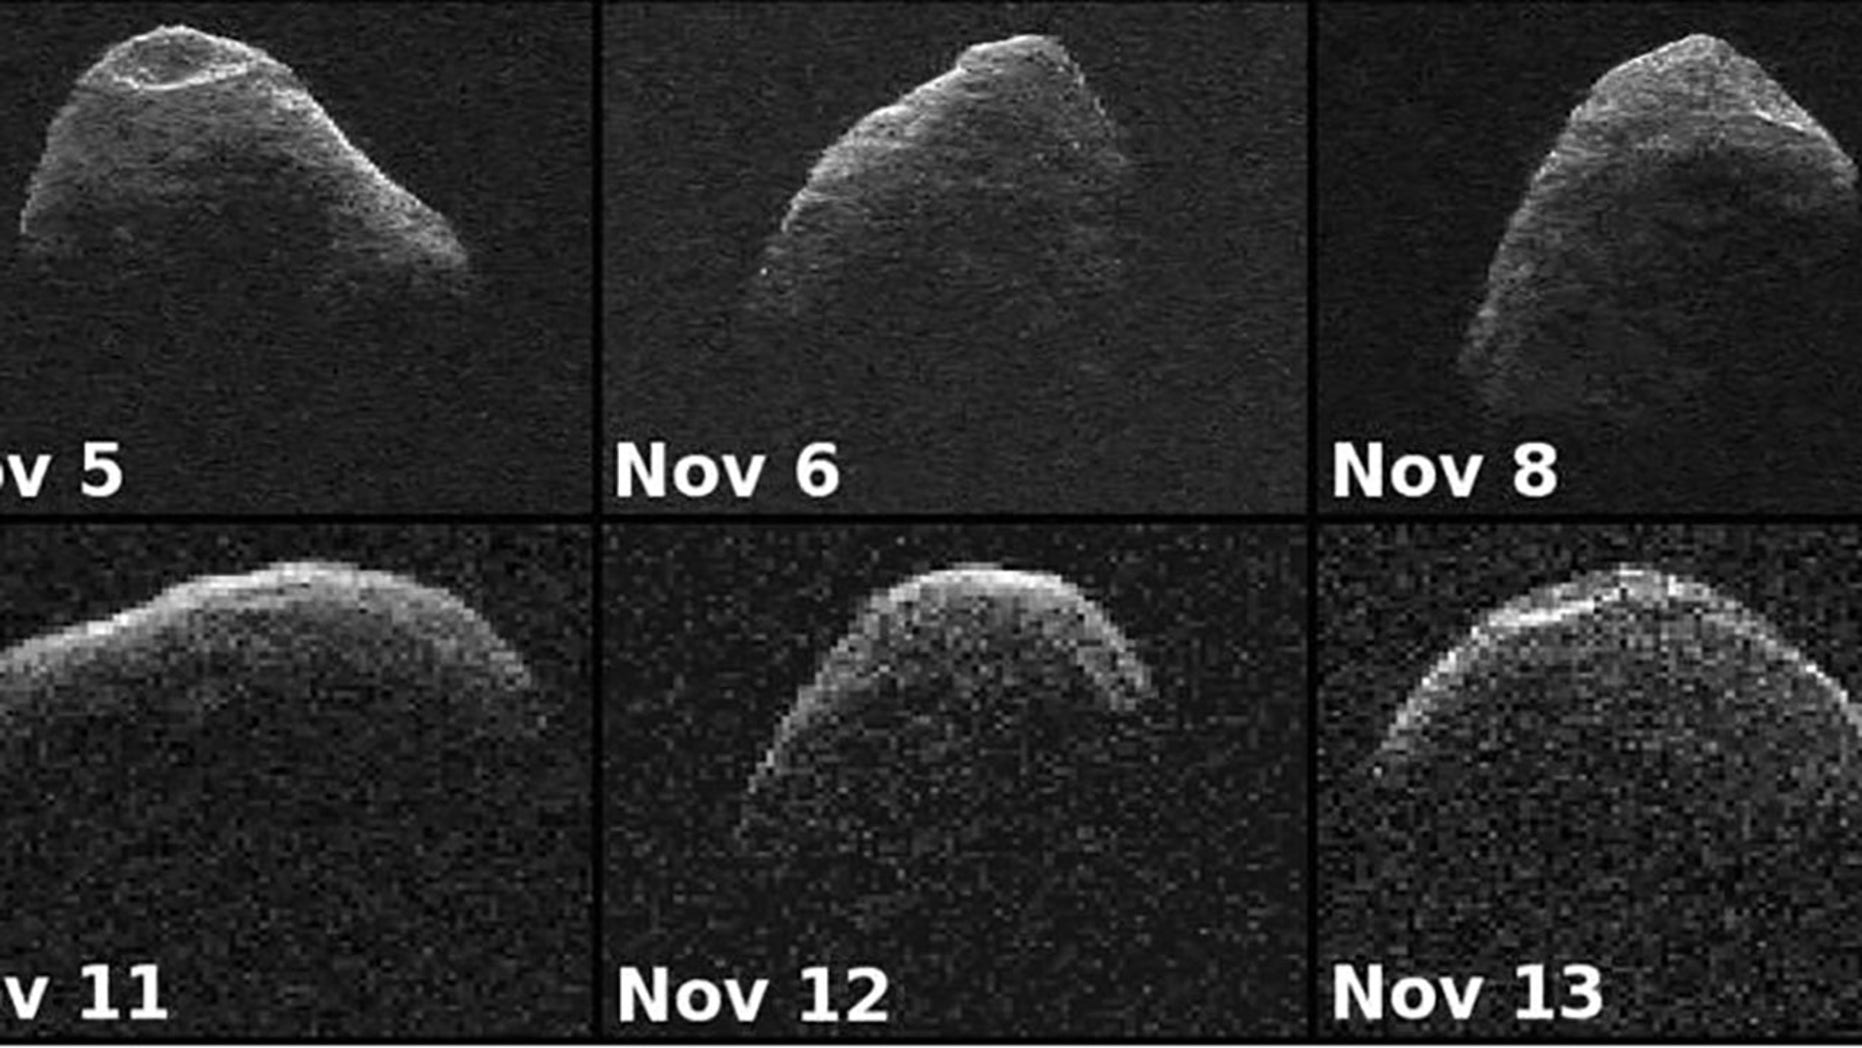 Westlake Legal Group apophis Huge 'God of Chaos' asteroid to pass near earth in 2029: report fox-news/science/air-and-space/asteroids fox-news/science fox news fnc/science fnc Brie Stimson article 756bb821-9b16-522a-9588-5b40e55fc49e